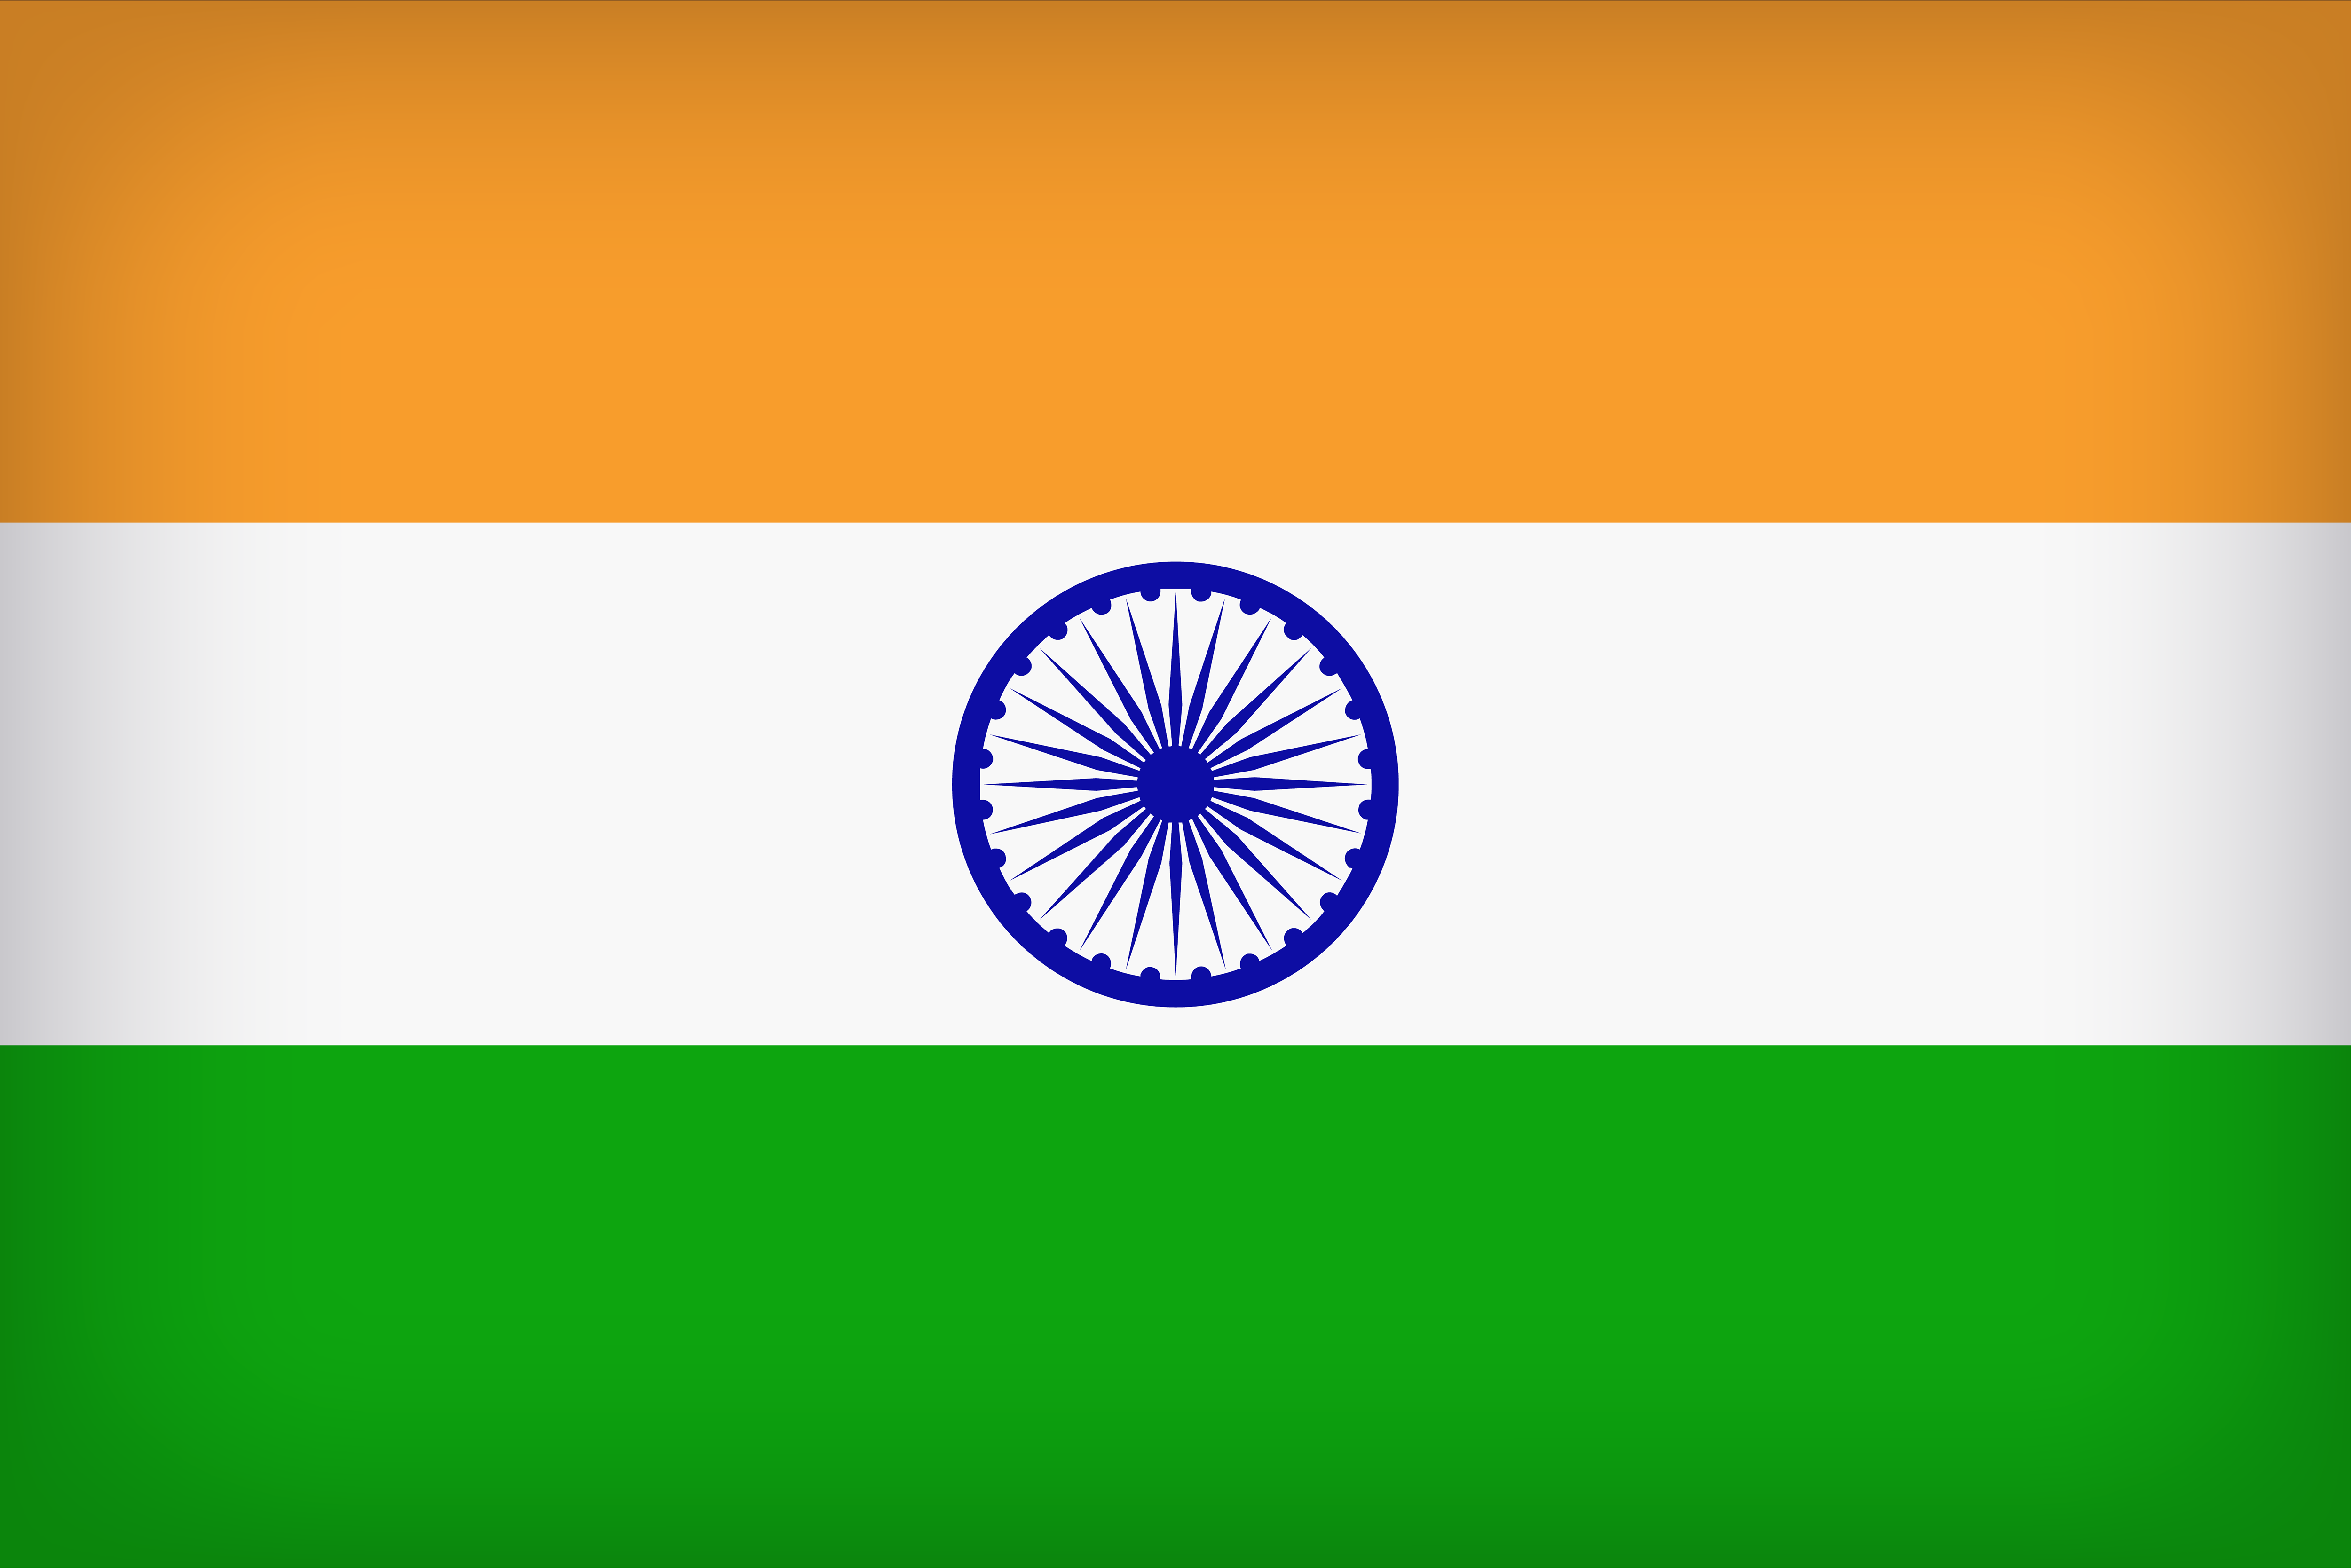 Indian Flag Images Hd720p: The National Flag Of India 4k Ultra HD Wallpaper